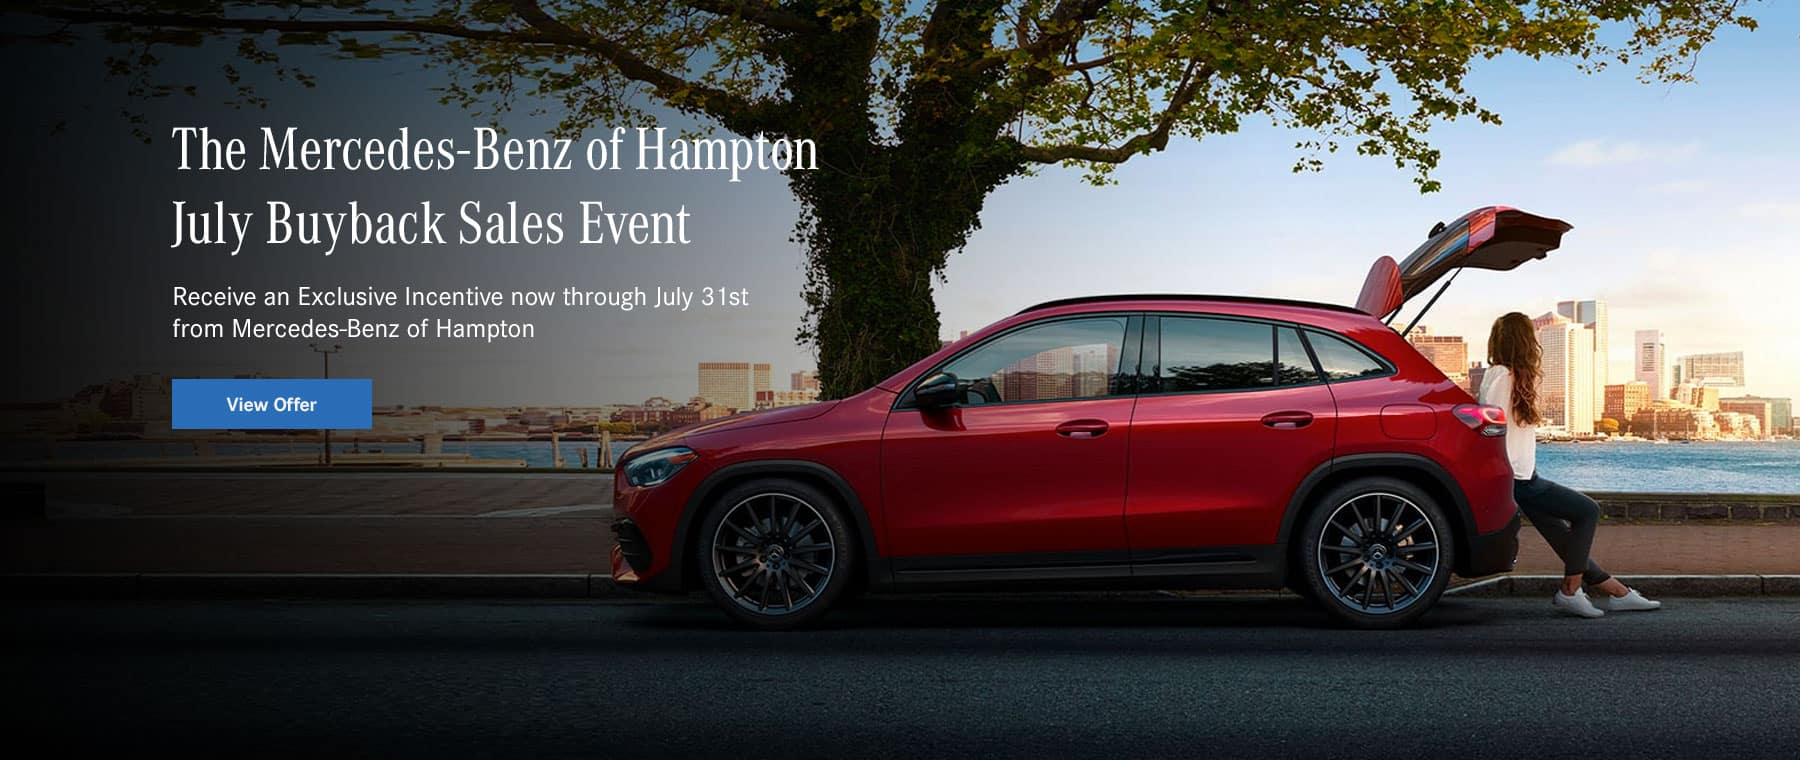 Receive an exclusive incentive now through July 31st from Mercedes-Benz of Hampton